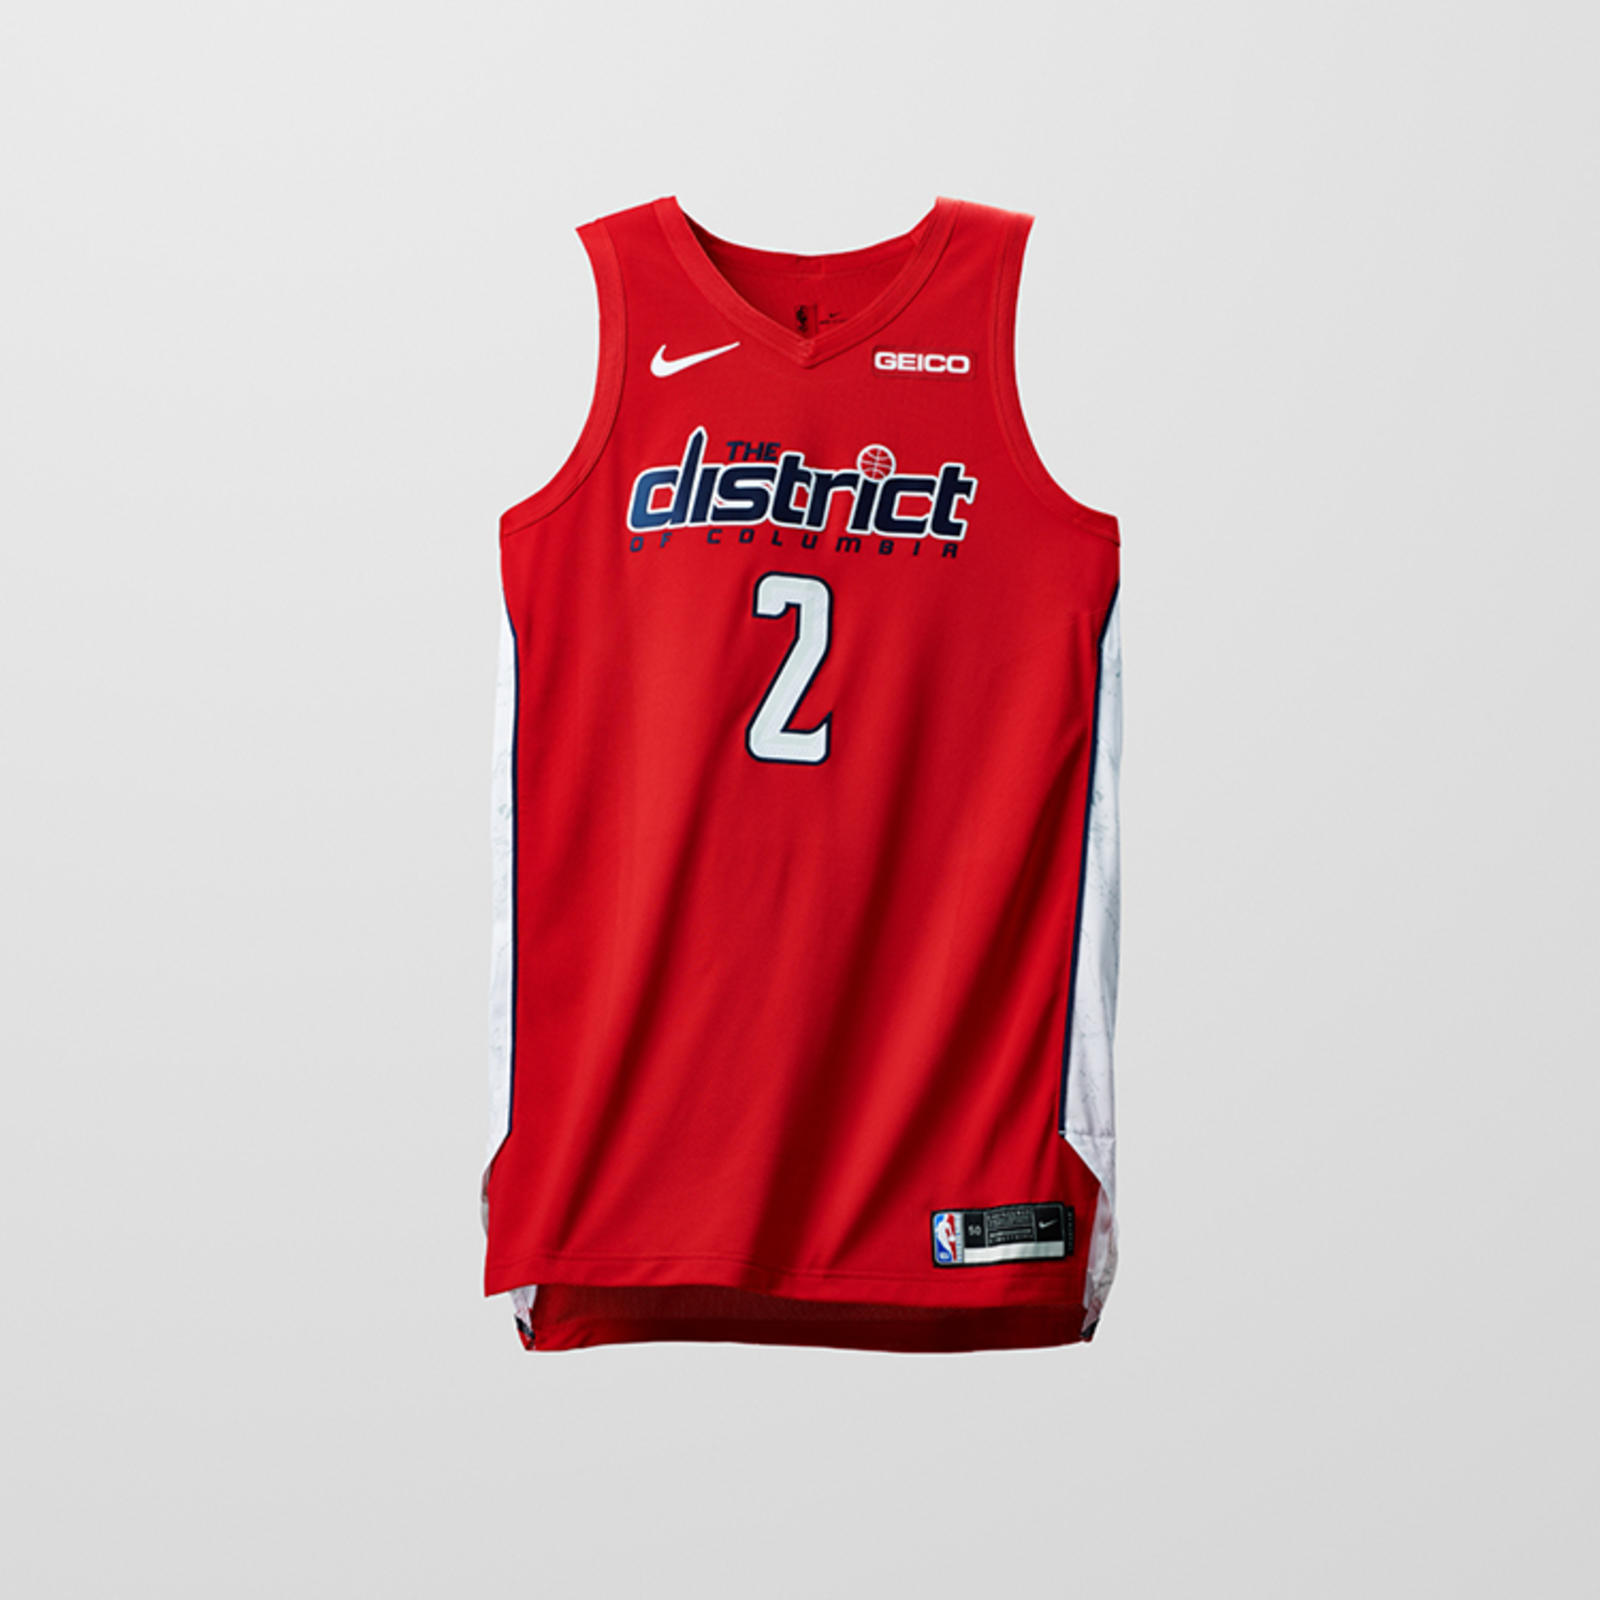 d1385b923 Introducing the Nike x NBA EARNED Edition Uniforms 11